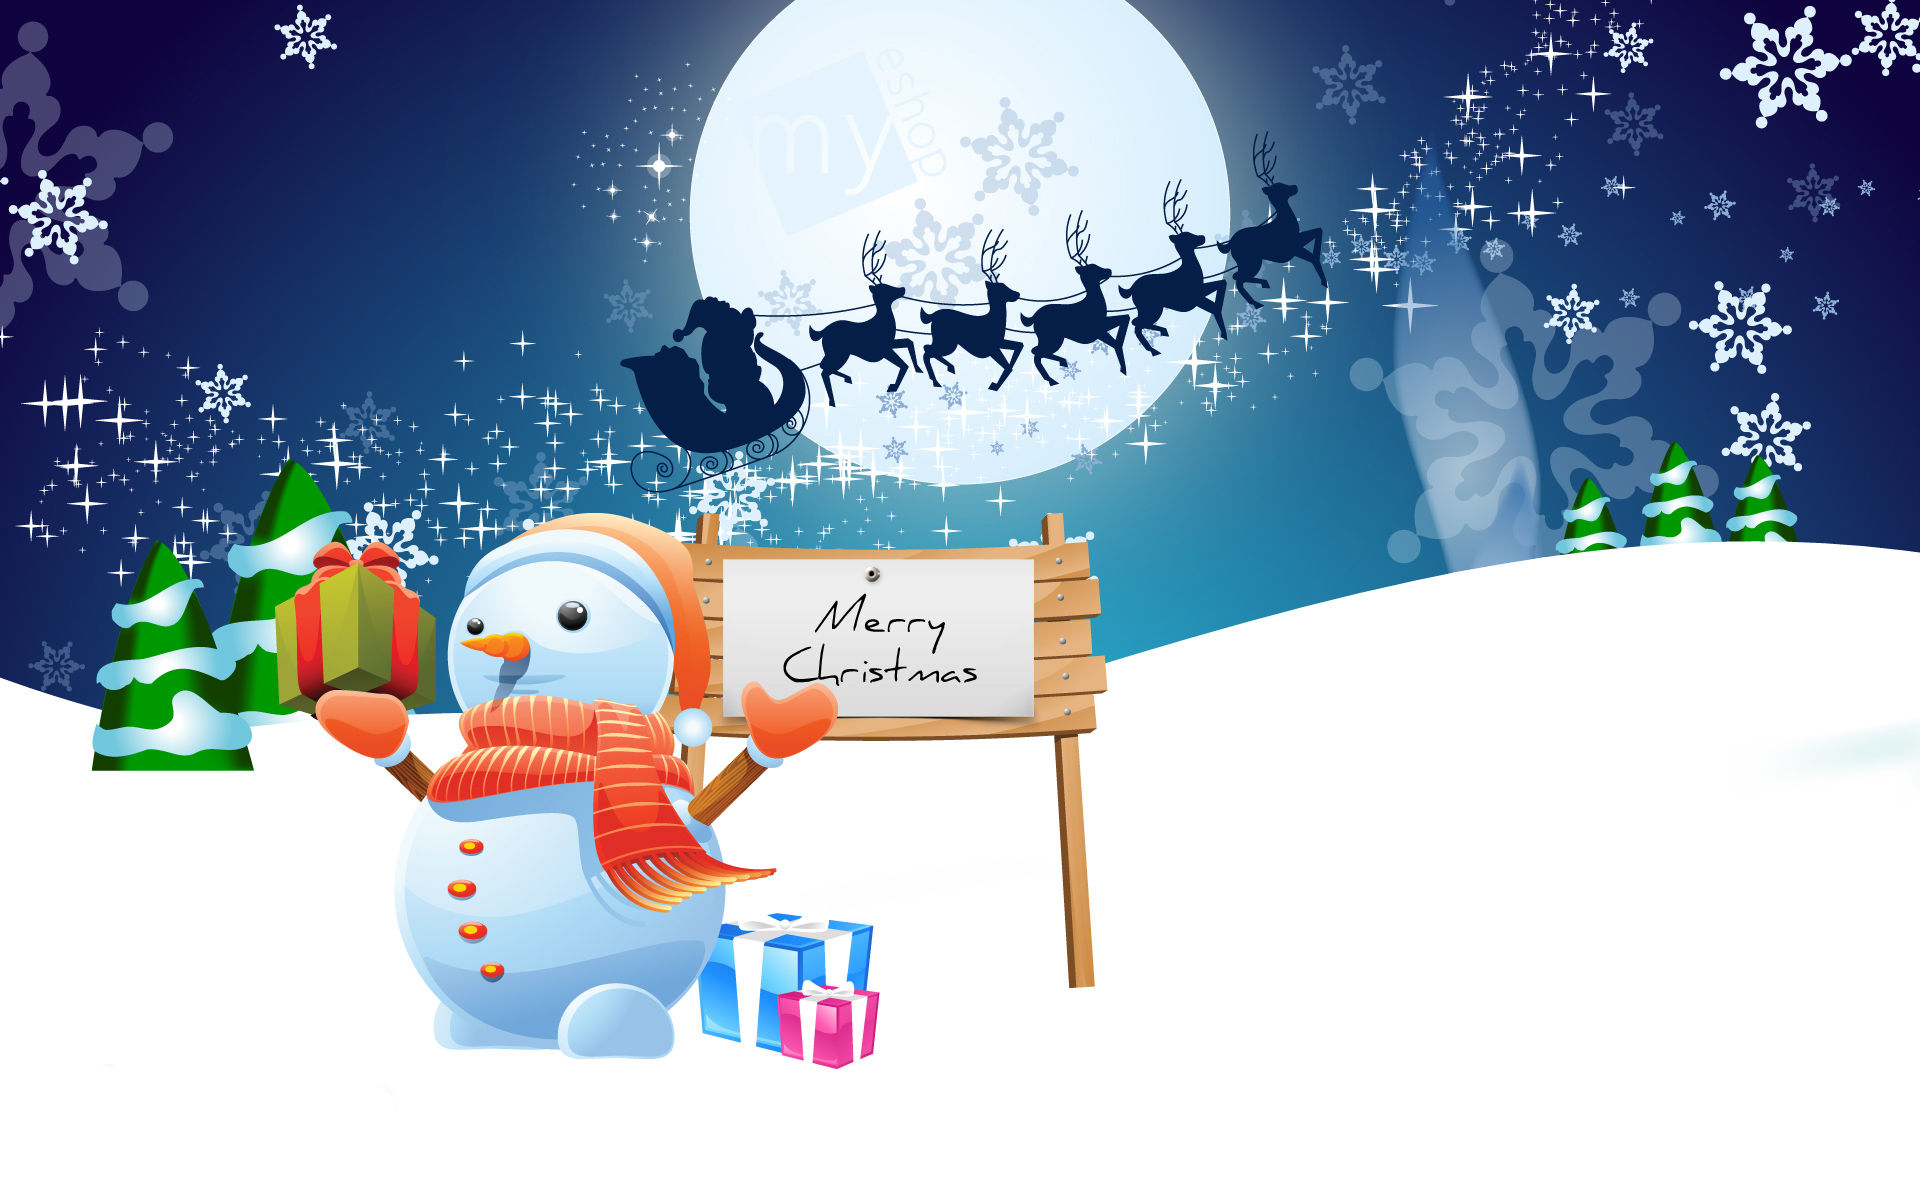 click to free download the wallpaper--Holiday Wallpapers - Snowman Merry Christmas Post in Pixel of 1920x1200, He Will be Delivering Gift and Spread Holiday Atmosphere 1920X1200 free wallpaper download